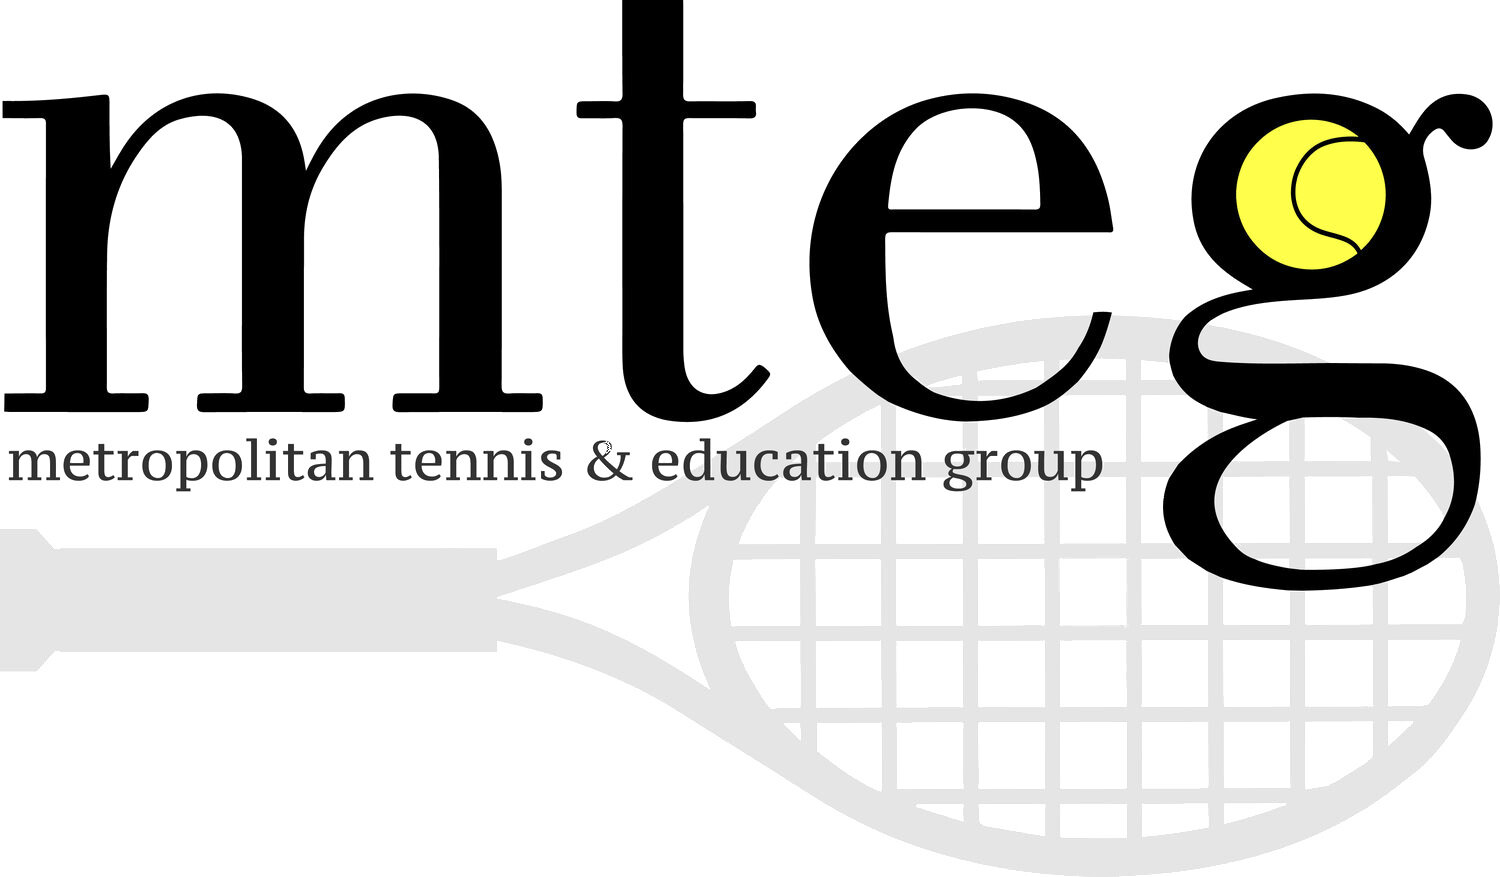 Metropolitan Tennis & Education Group